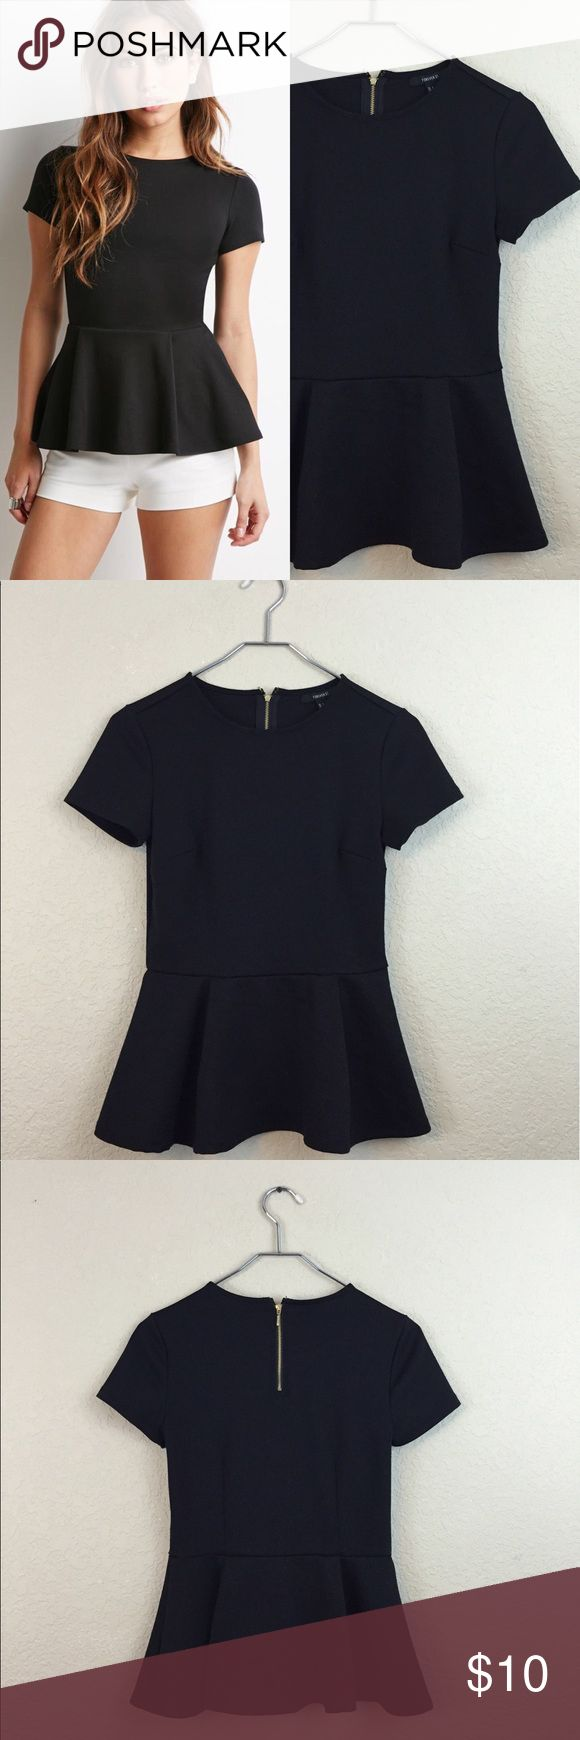 Black peplum top • Forever 21 • pleated peplum  • Worn once no damages • Size small Forever 21 Tops Blouses